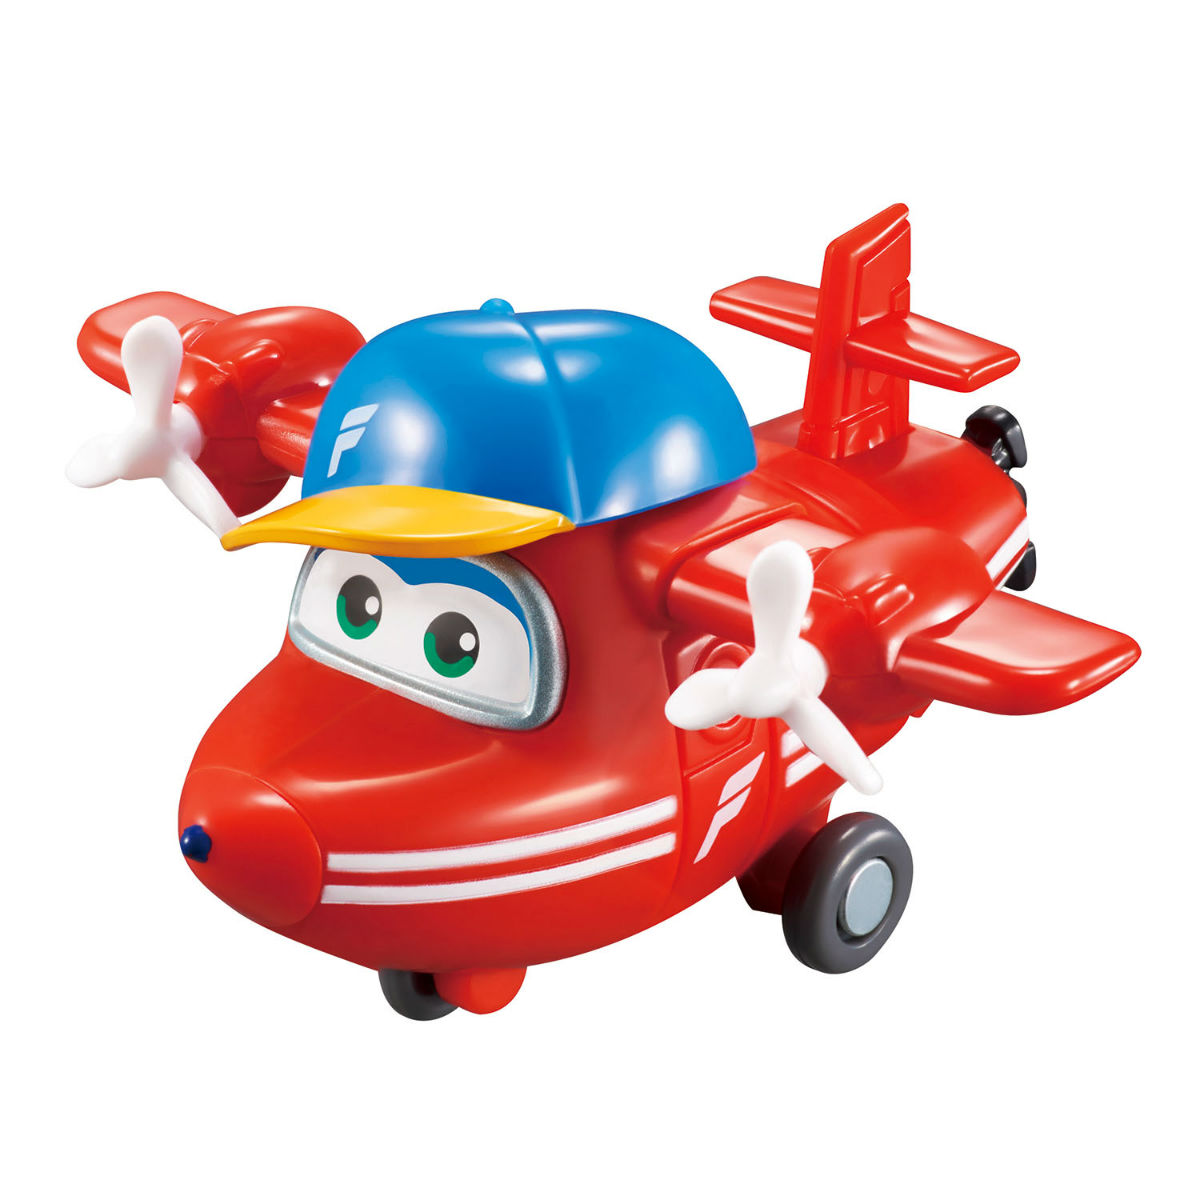 Мини-трансформер Super Wings Флип фото